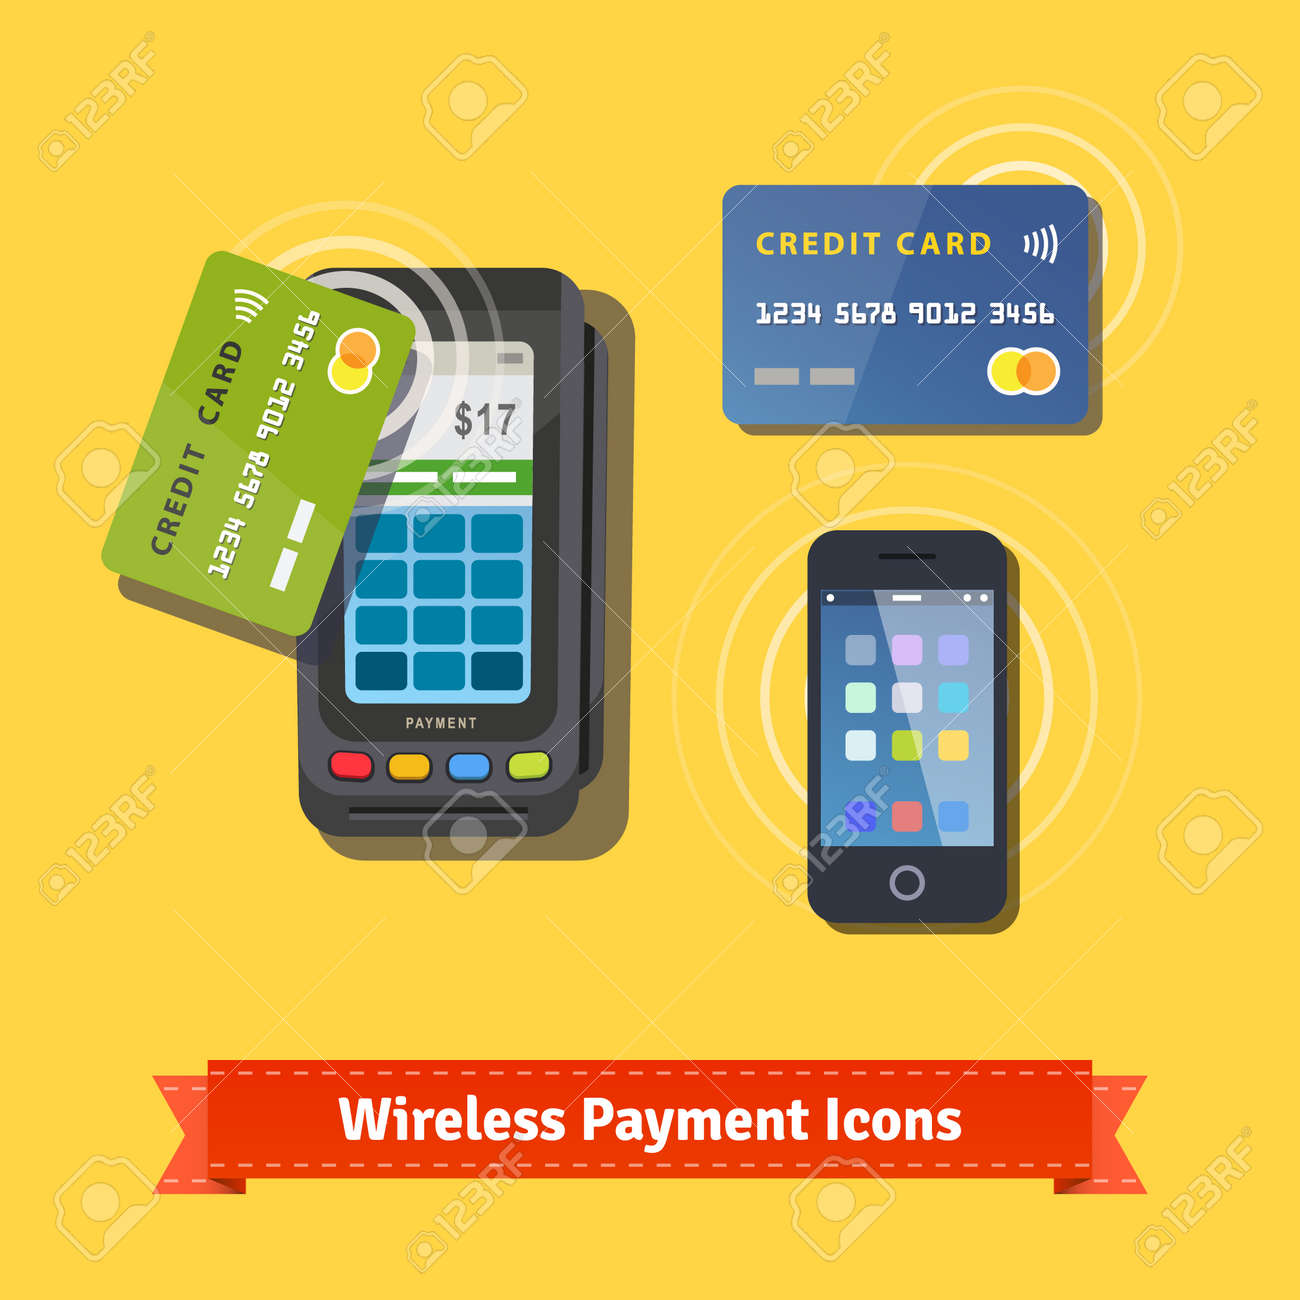 Credit card machines small business gallery free business cards credit card terminals for businesses choice image free business wireless business payment flat icon set wireless magicingreecefo Image collections